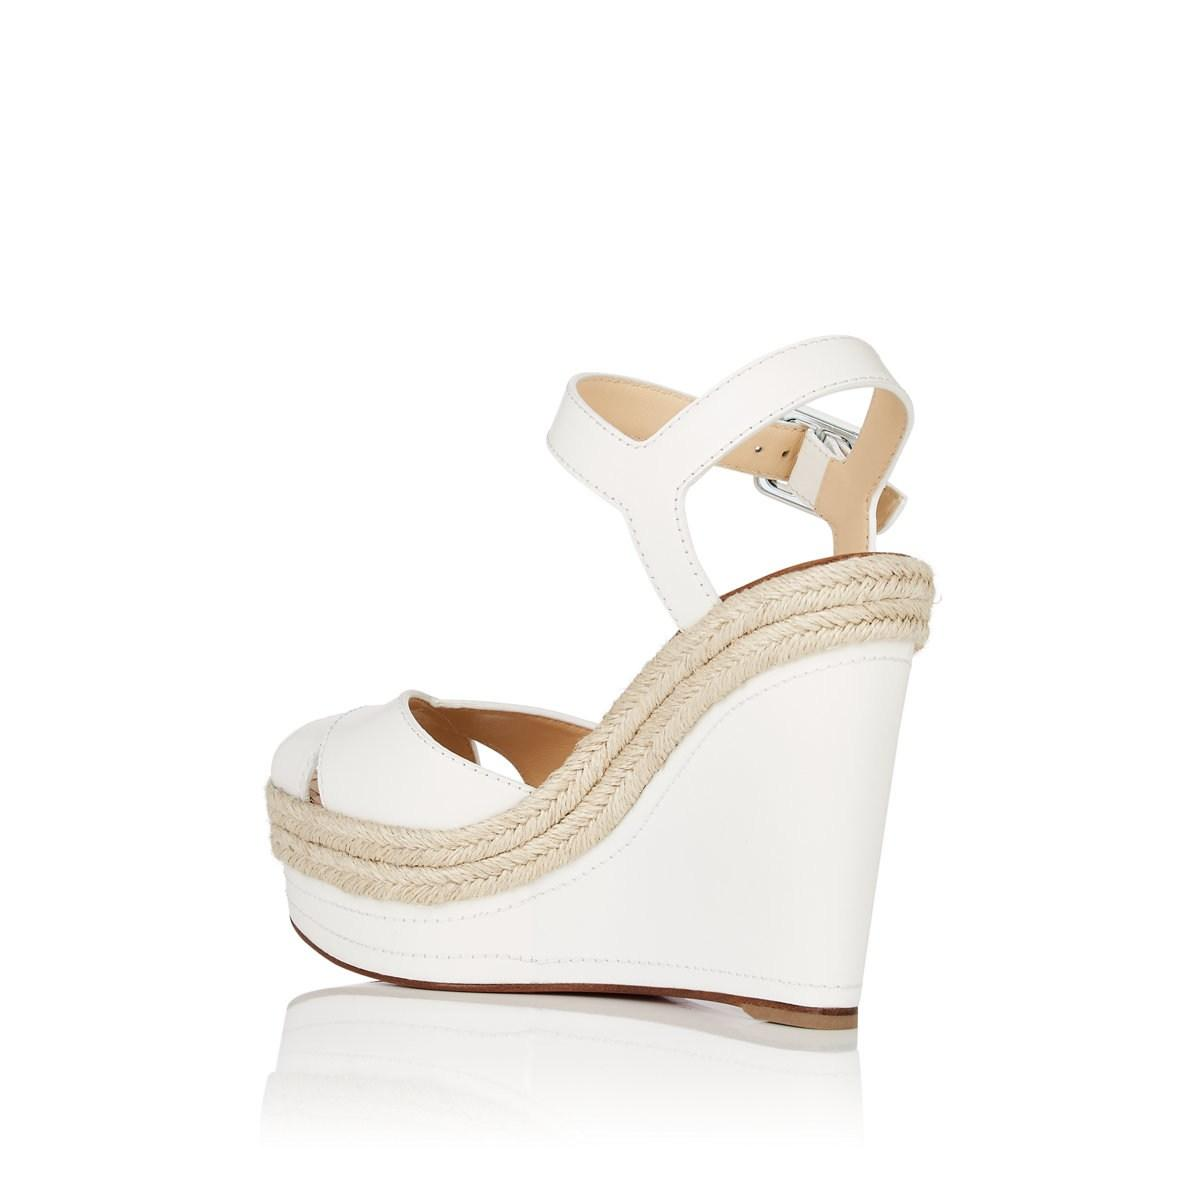 188ee1c0be40 Christian Louboutin - White Almeria Leather Platform-wedge Sandals - Lyst.  View fullscreen